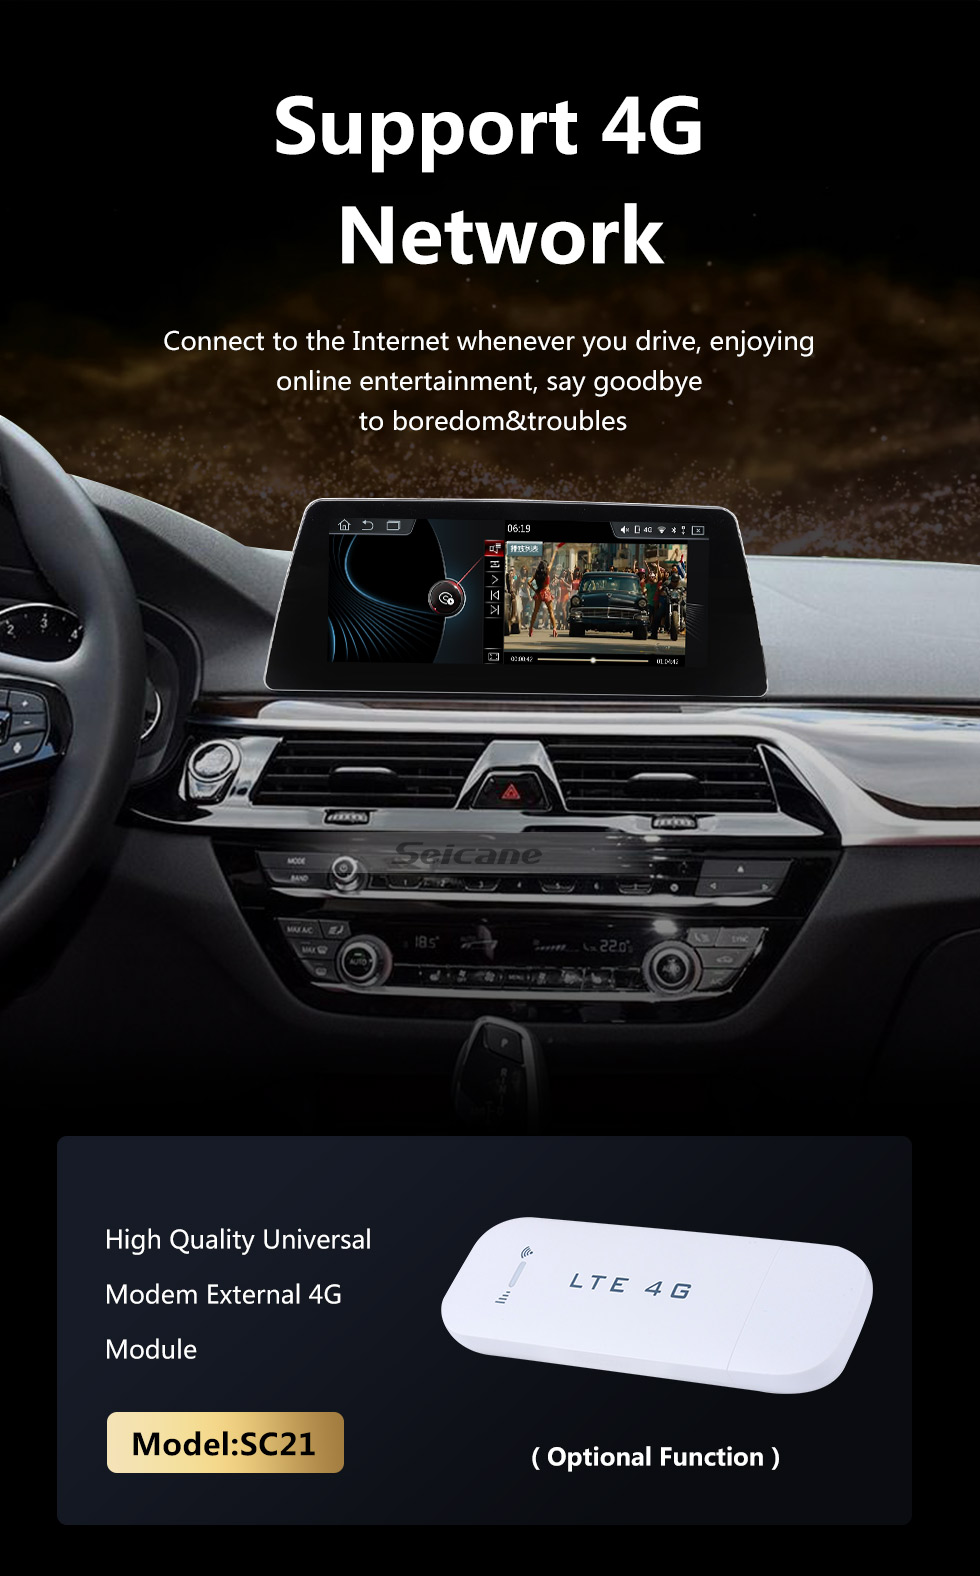 Seicane HD Touchscreen 10.25 inch Android 10.0 for BMW 5 Series G30 G31 G38 F90(2018-) EVO Radio GPS Navigation System with Bluetooth support Carplay